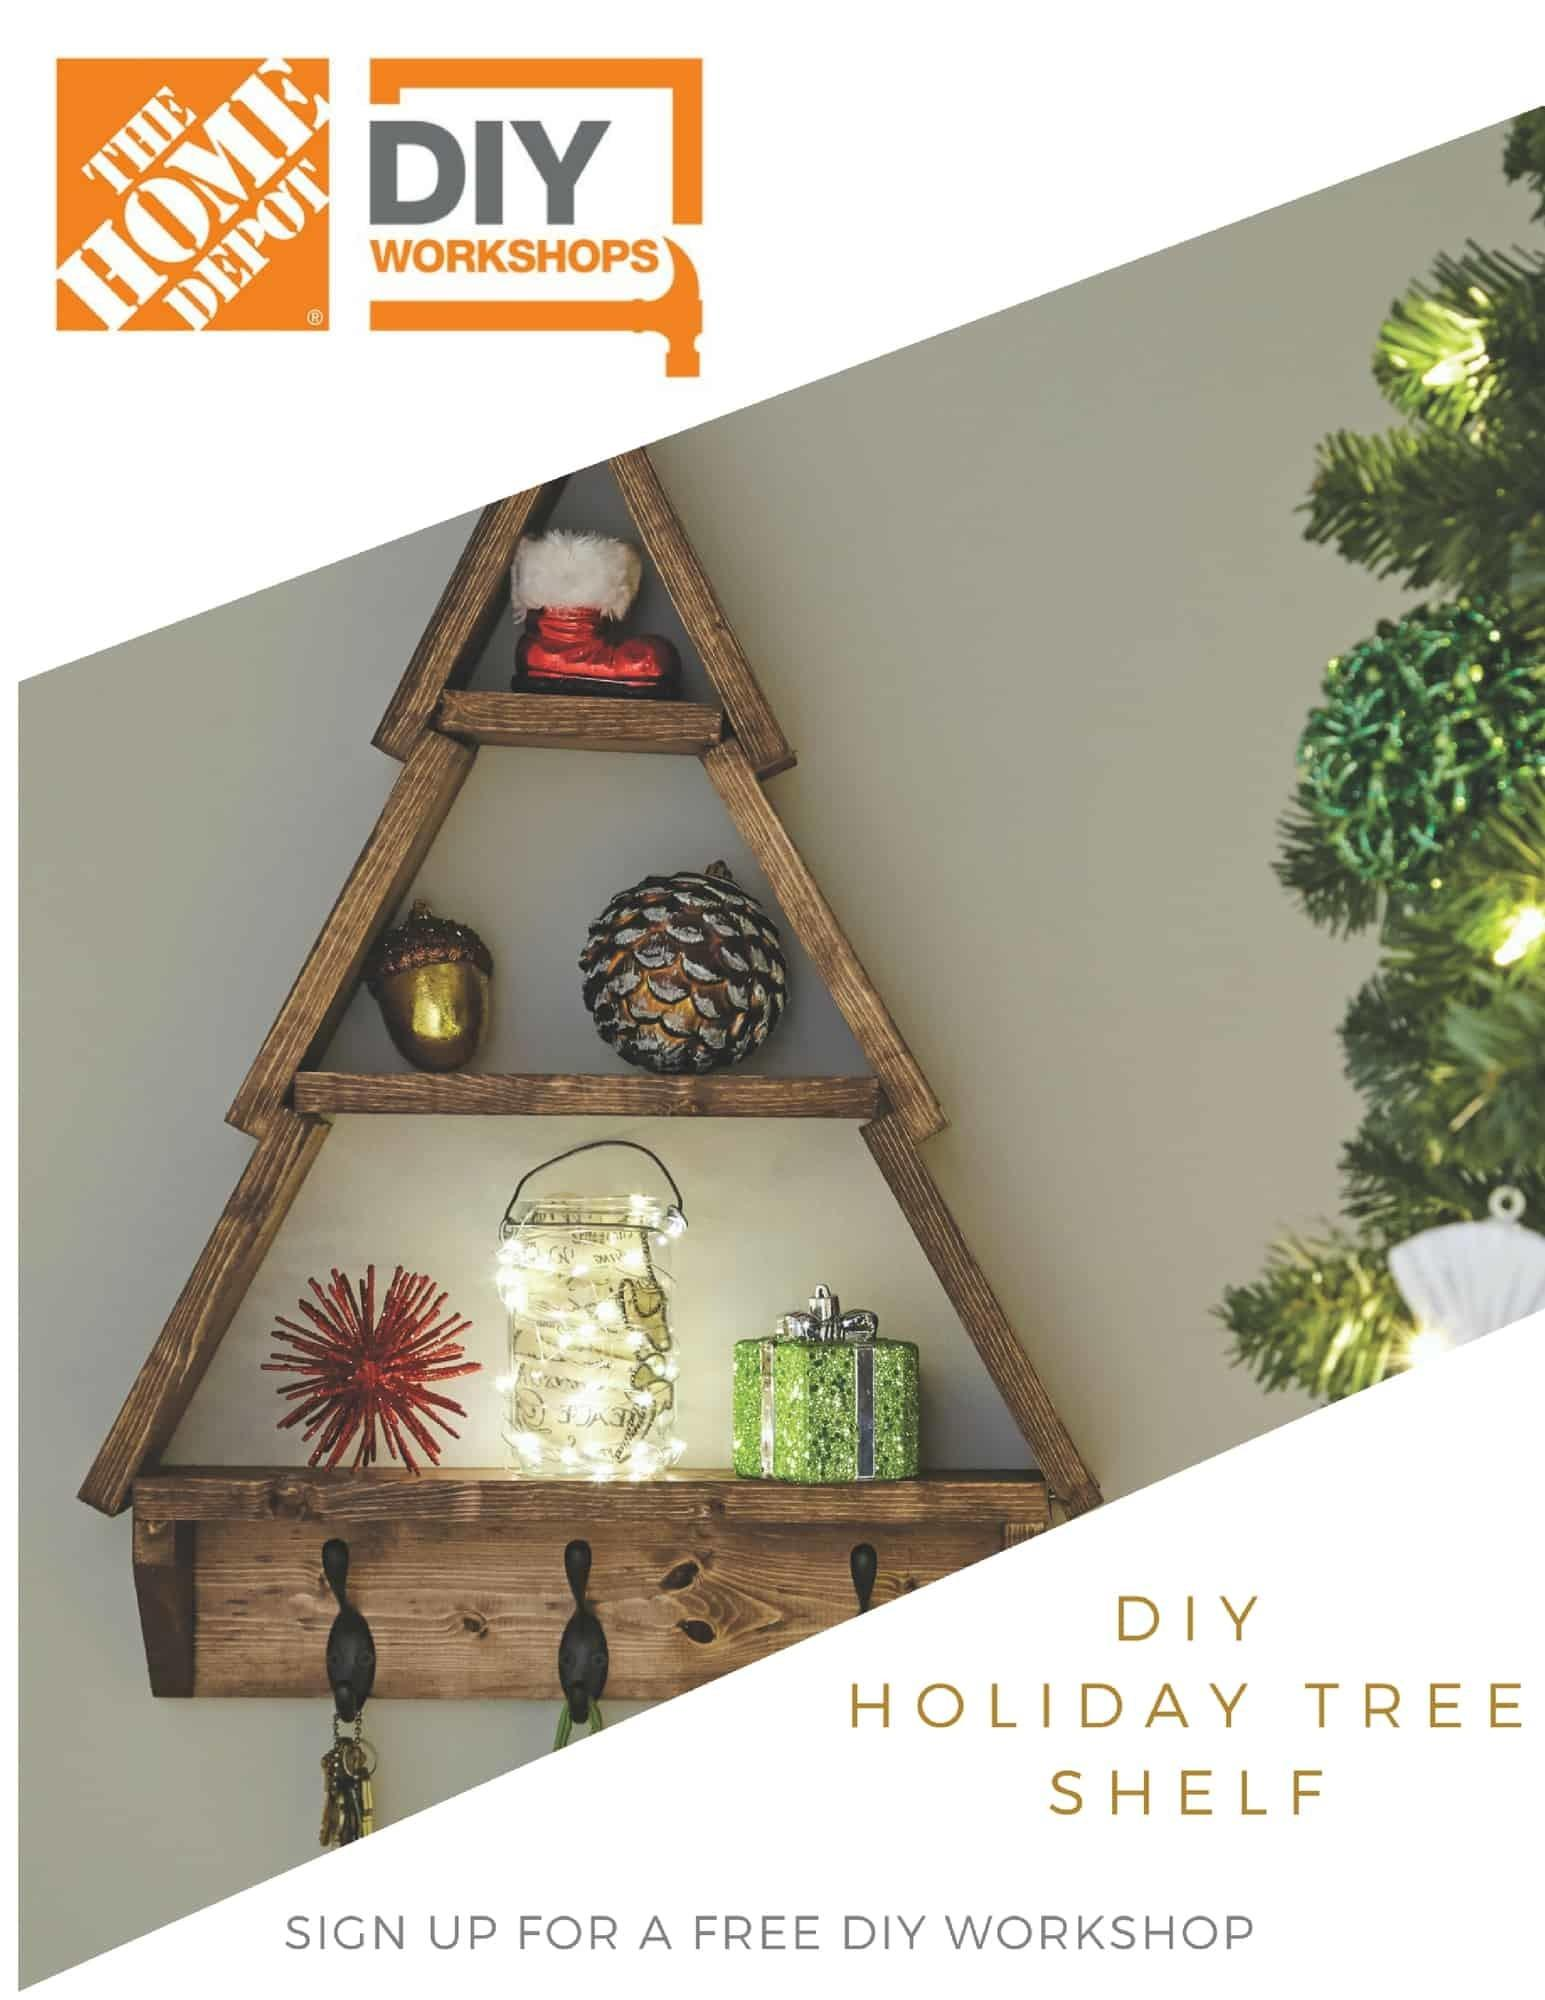 Home Depot Diy Workshop Holiday Tree Shelf Huntress